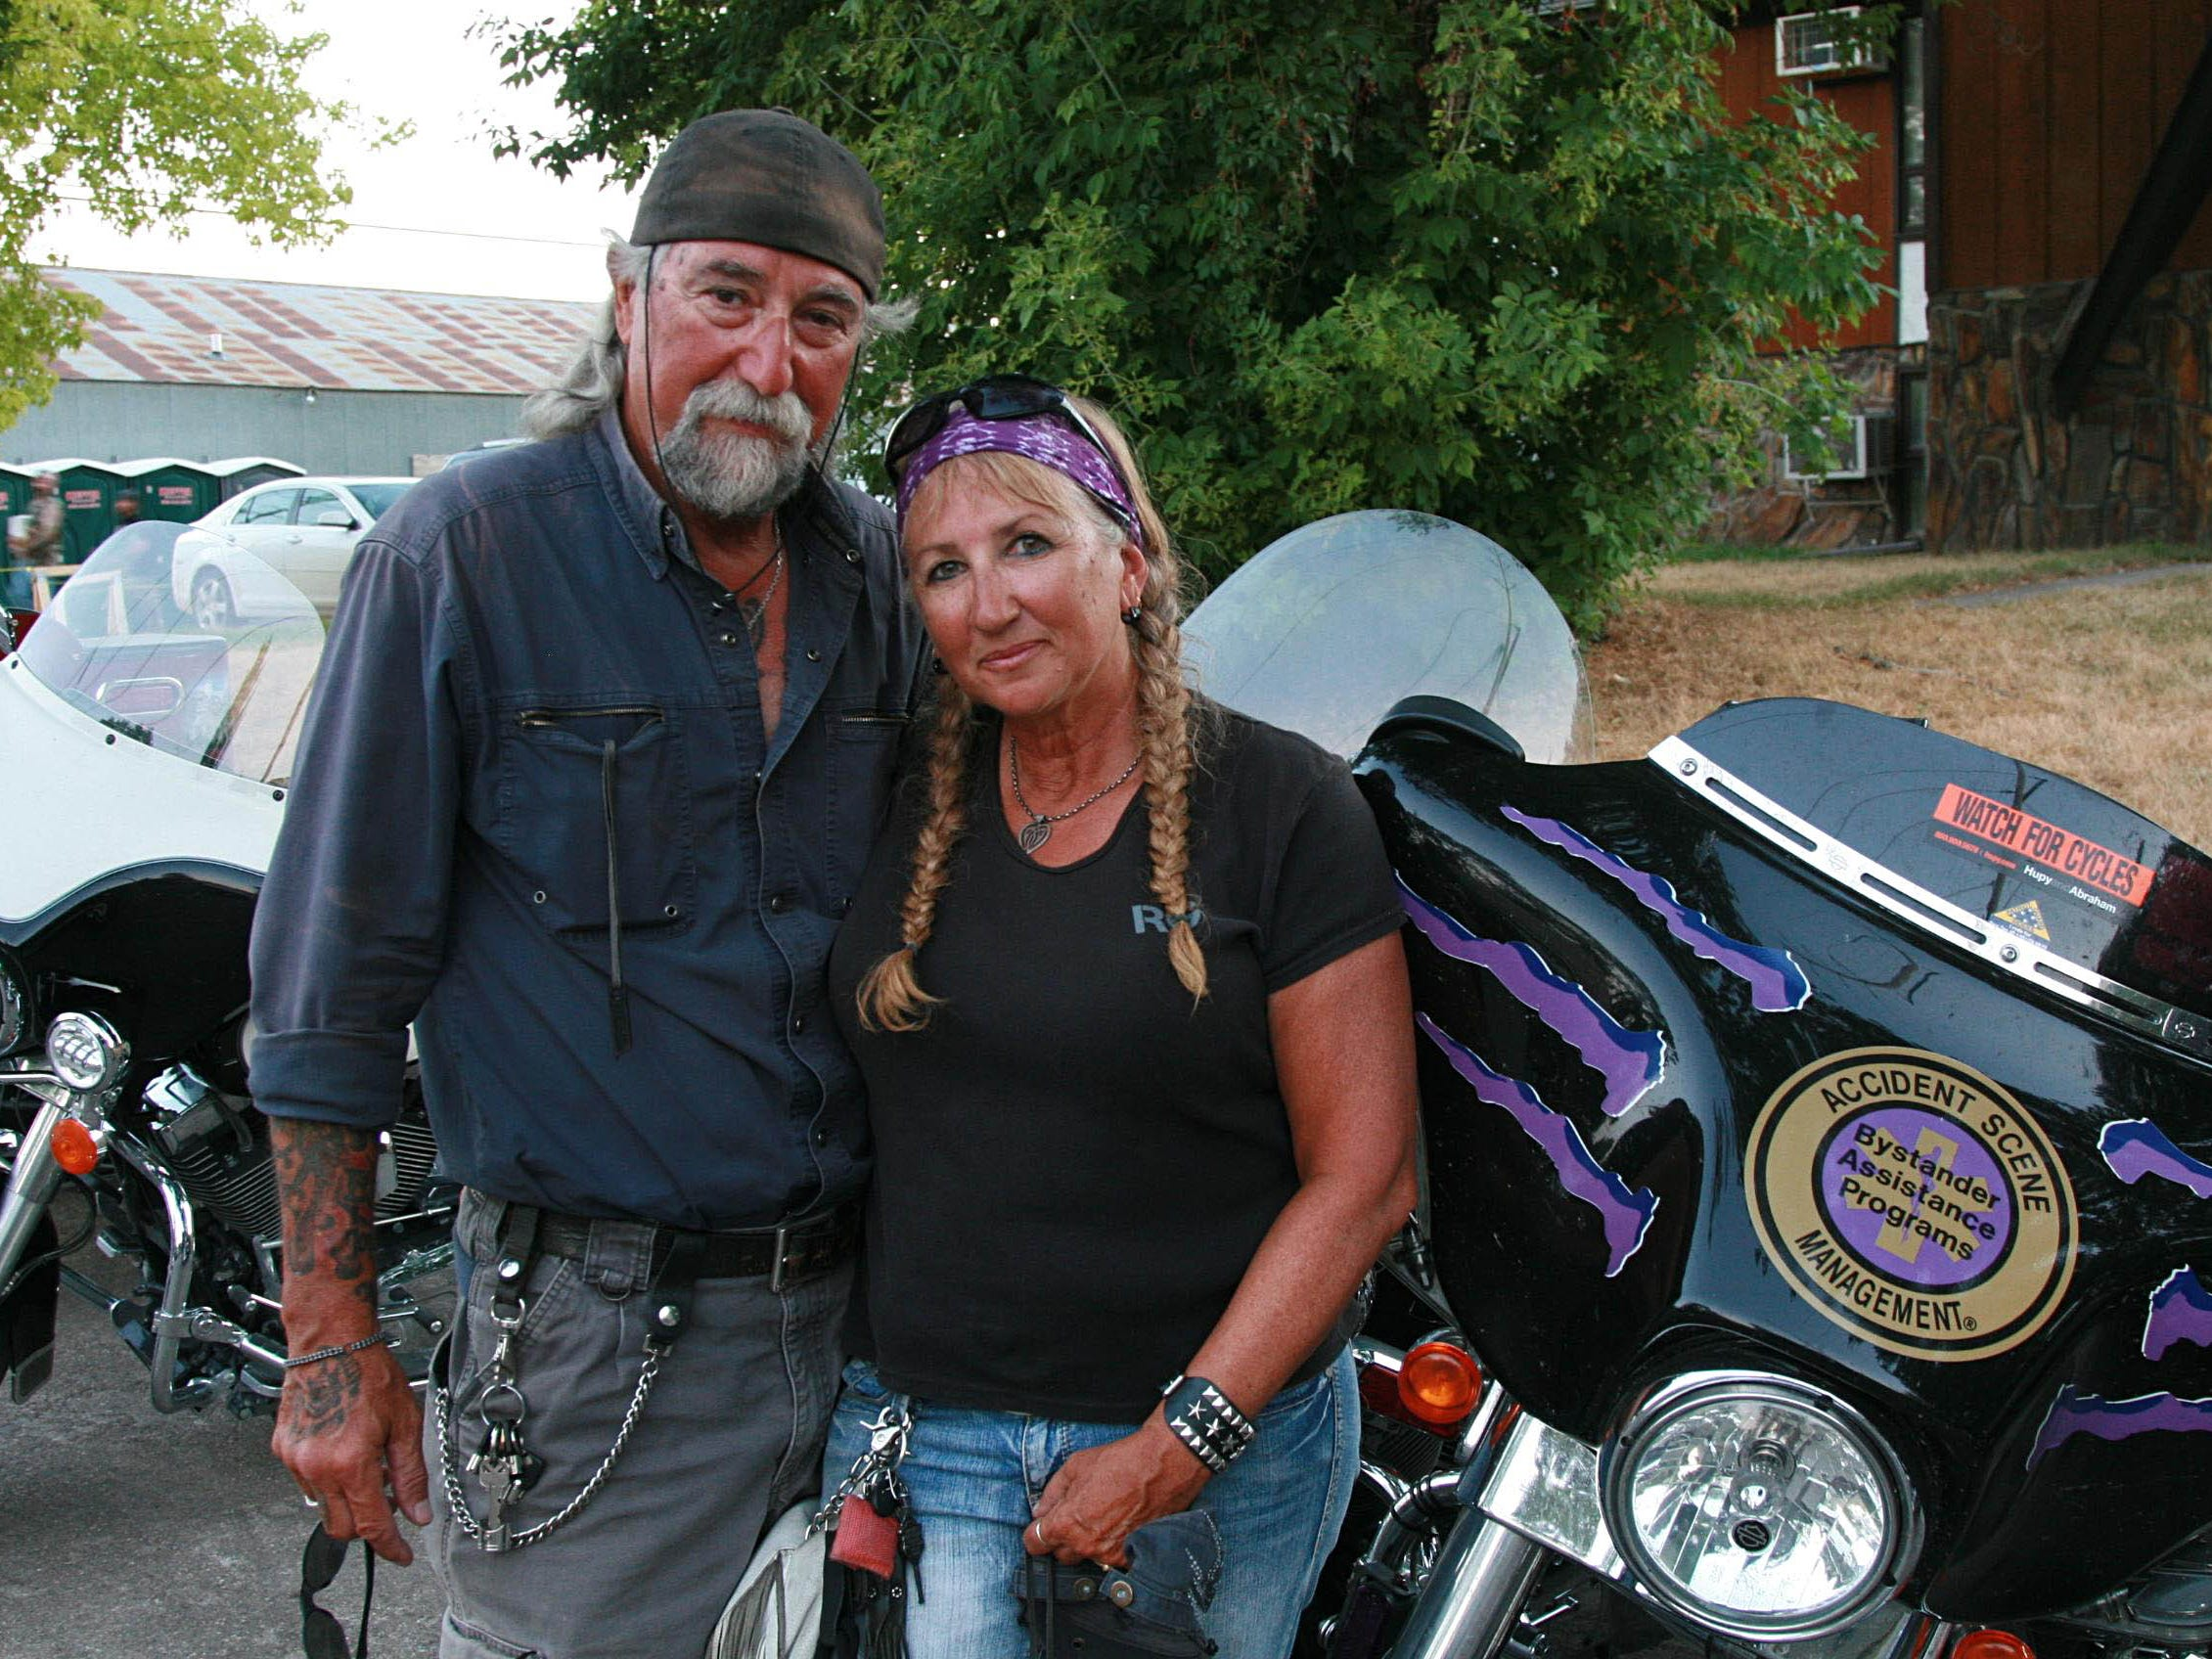 2012: Tony and Vicki Sanfelipo of Milwaukee have been coming to the Sturgis Rally since the mid-1980s. Tony Sanfelipo is the founder of Wisconsin ABATE, a group that promotes bikers' rights.